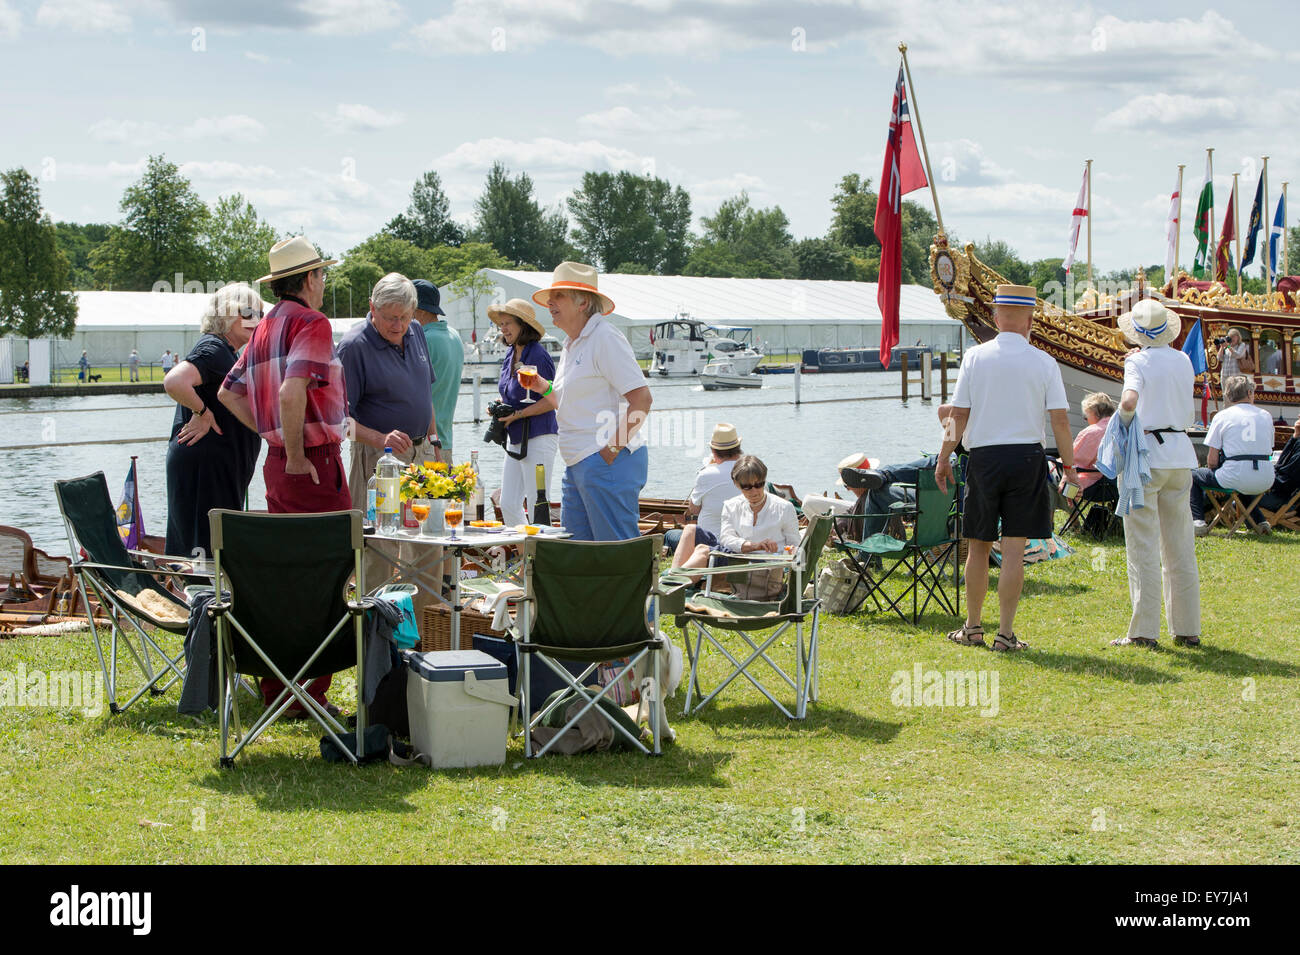 People picnicking at the Thames Traditional Boat Festival, Fawley Meadows, Henley On Thames, England - Stock Image